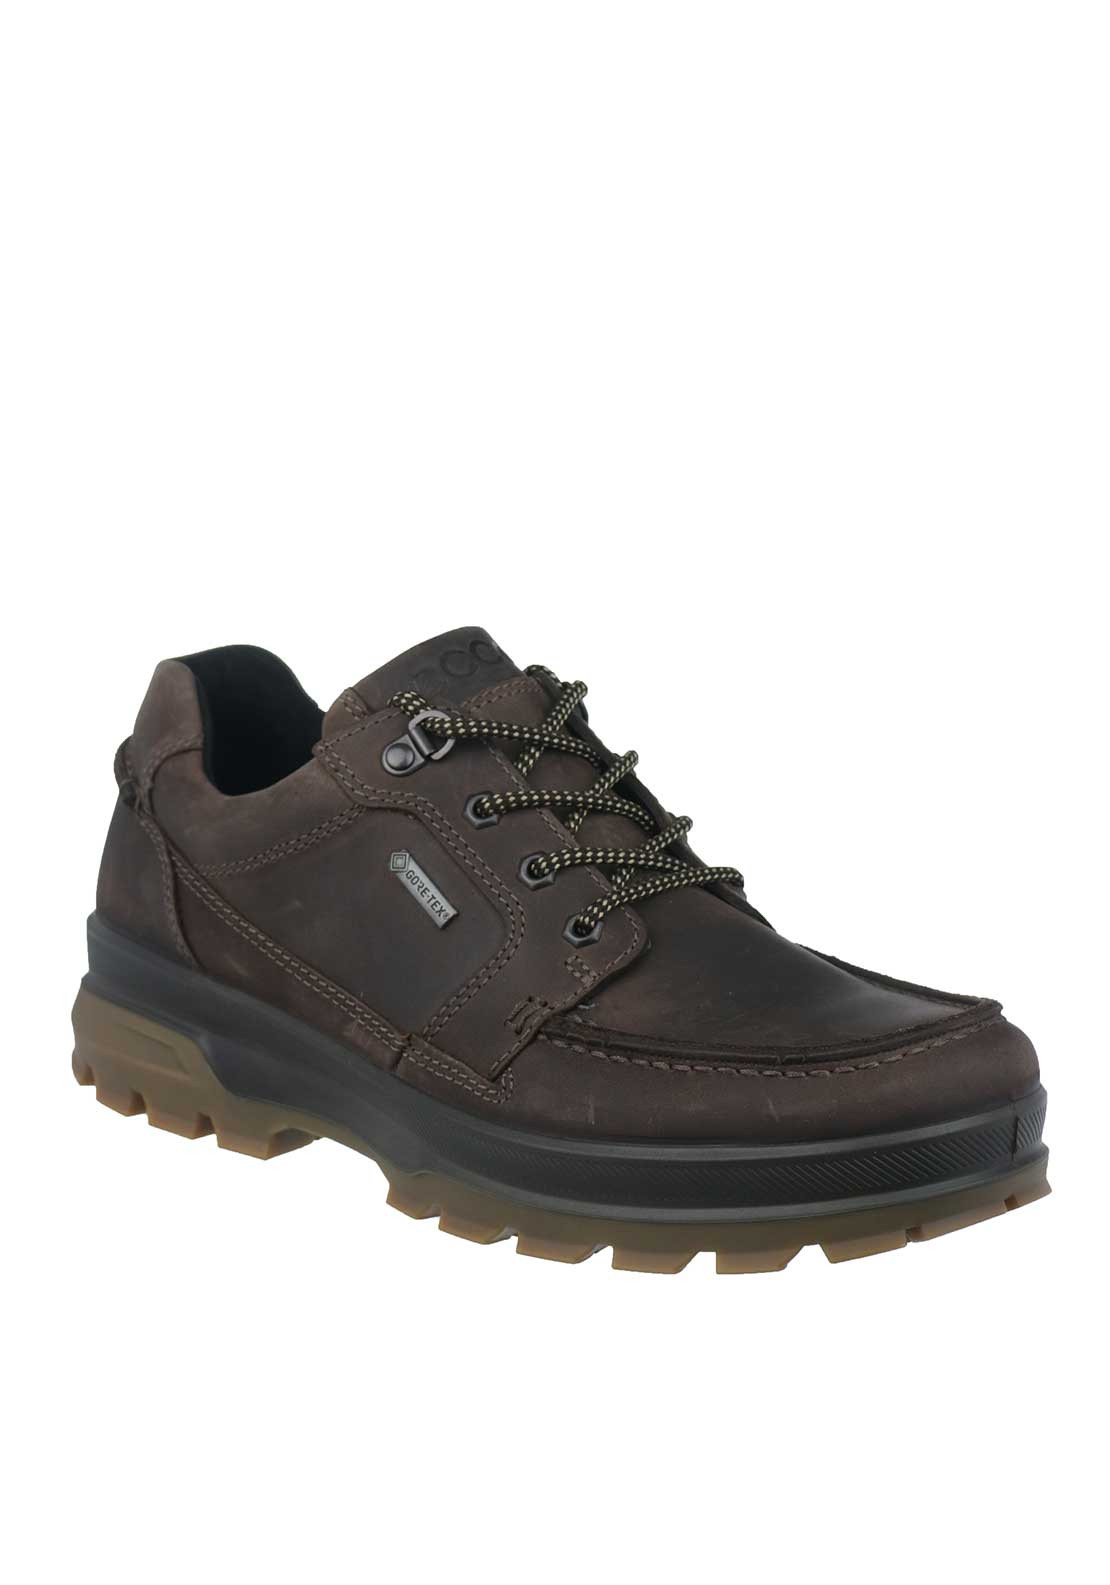 Ecco Mens Rugged Track Leather Waterproof Shoe, Mocha